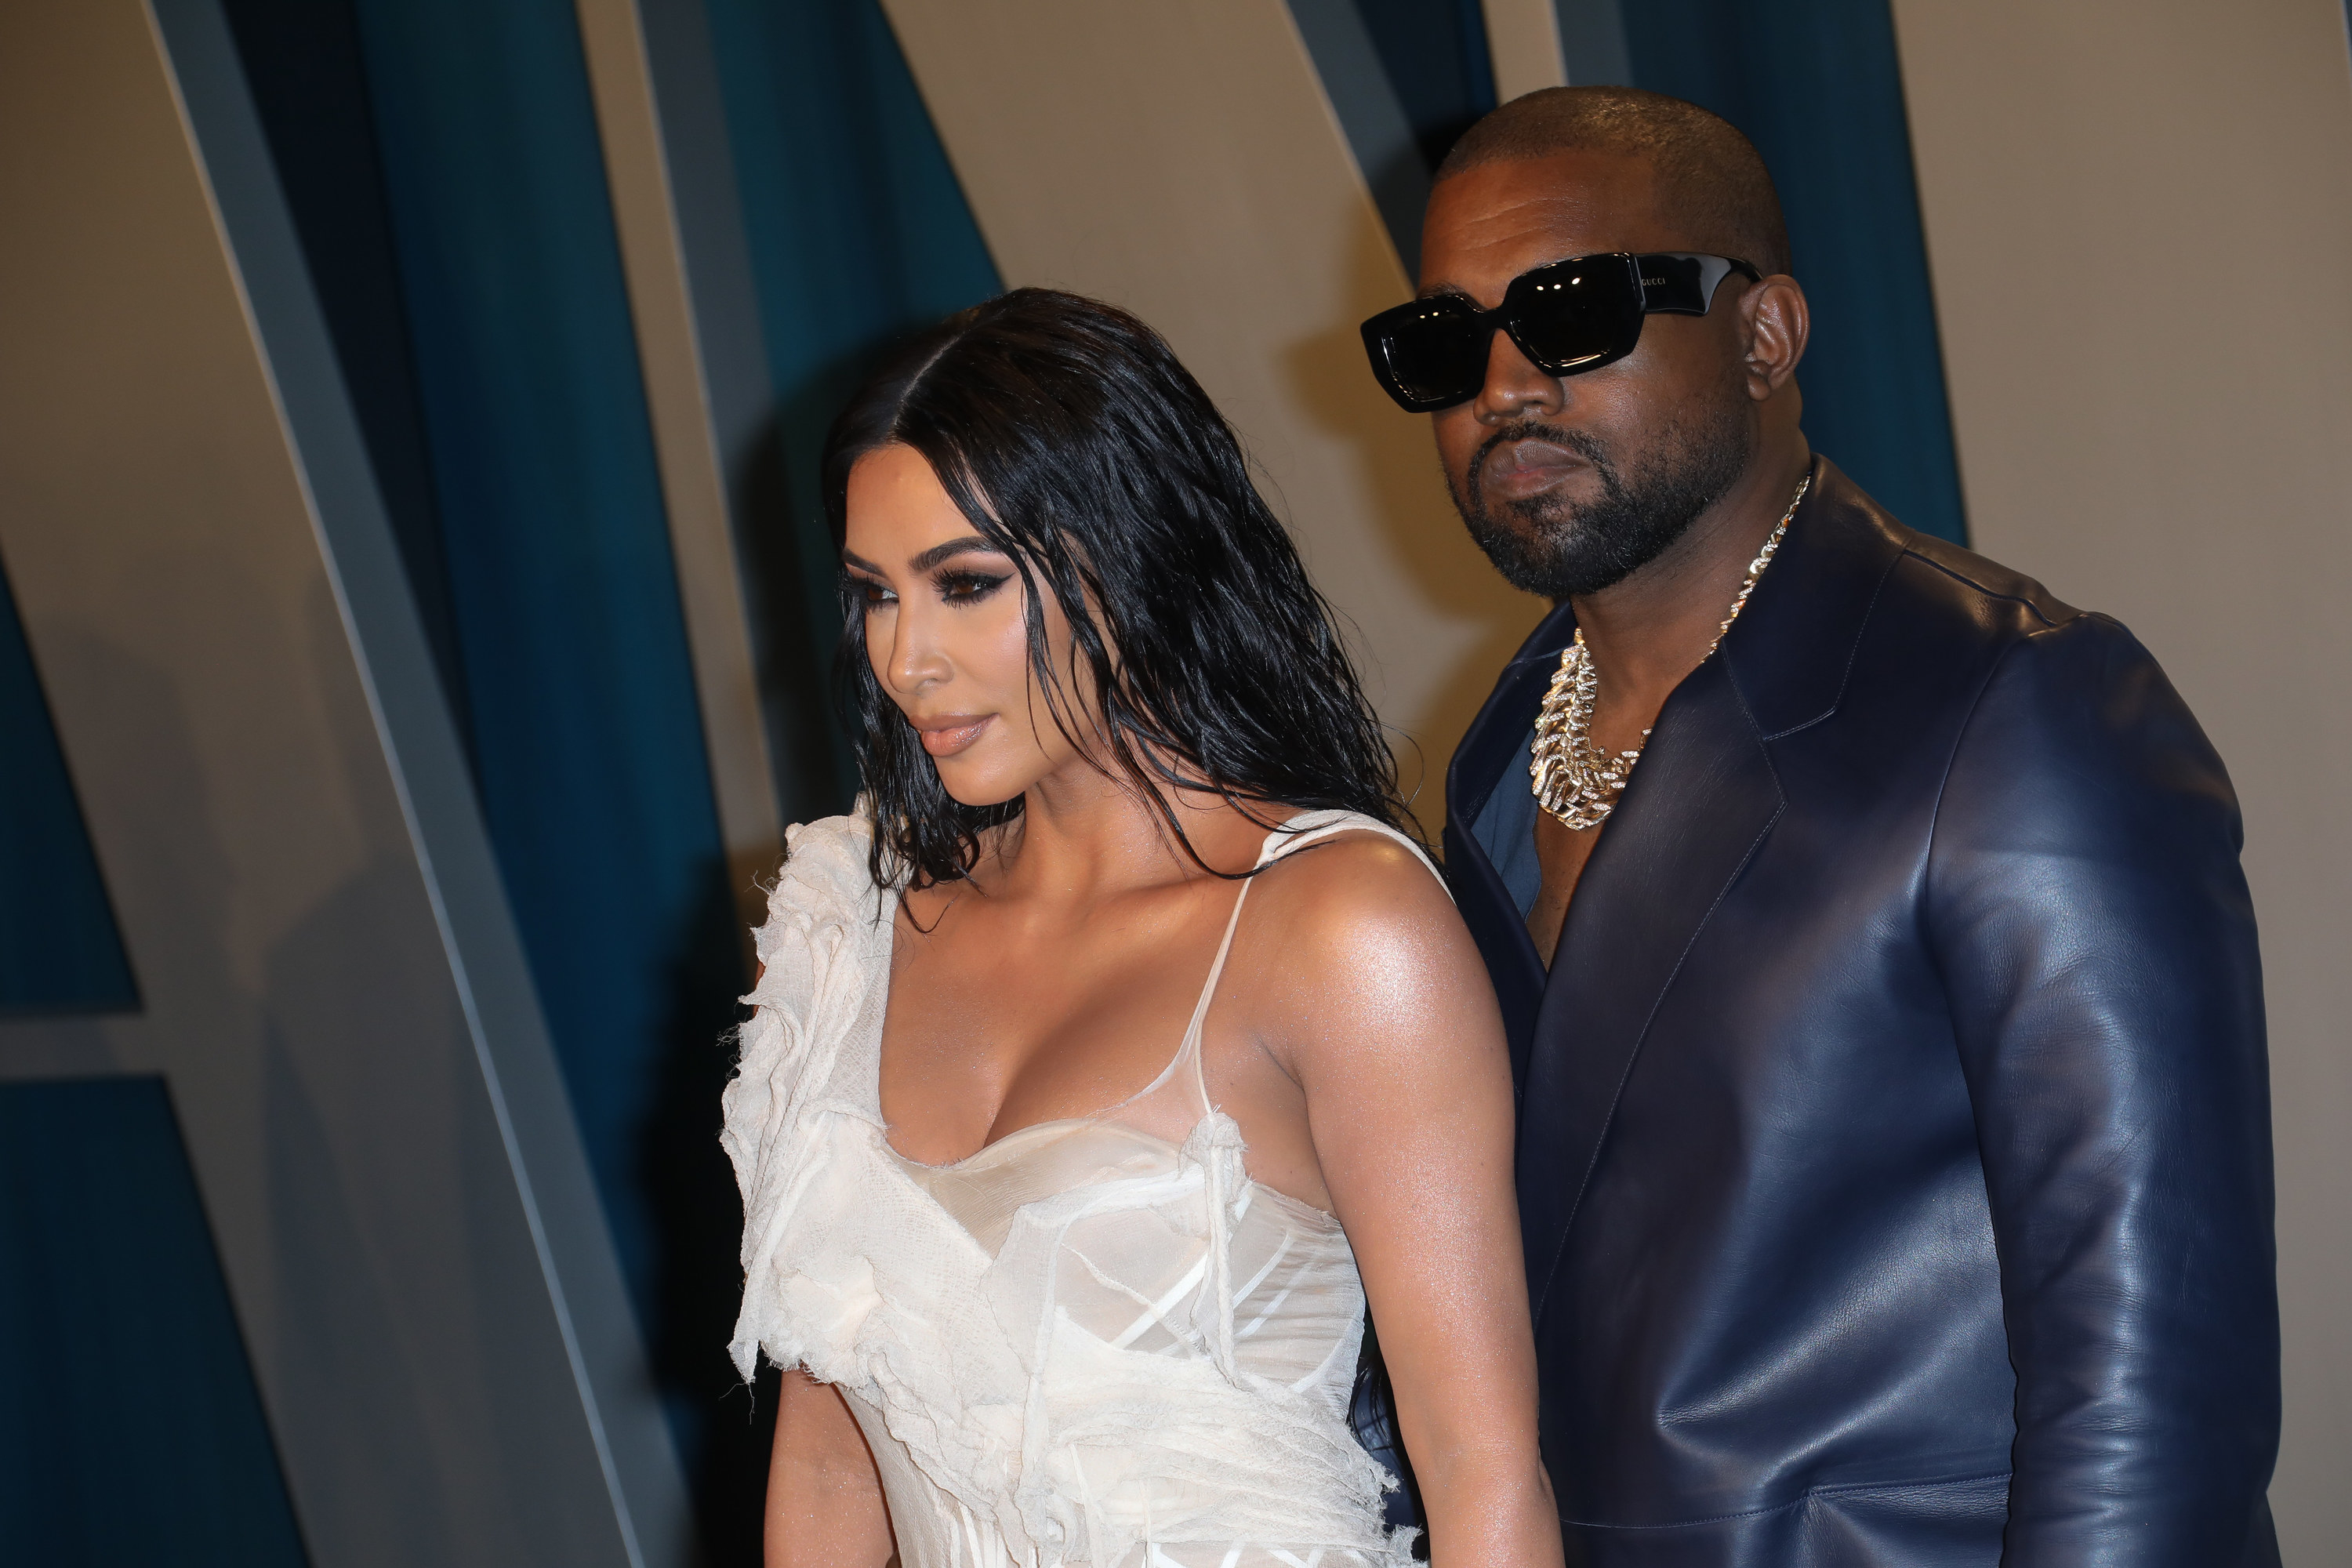 Photo of Kim Kardashian in a white gauzy dress with Kanye West in a leather suit and sunglasses